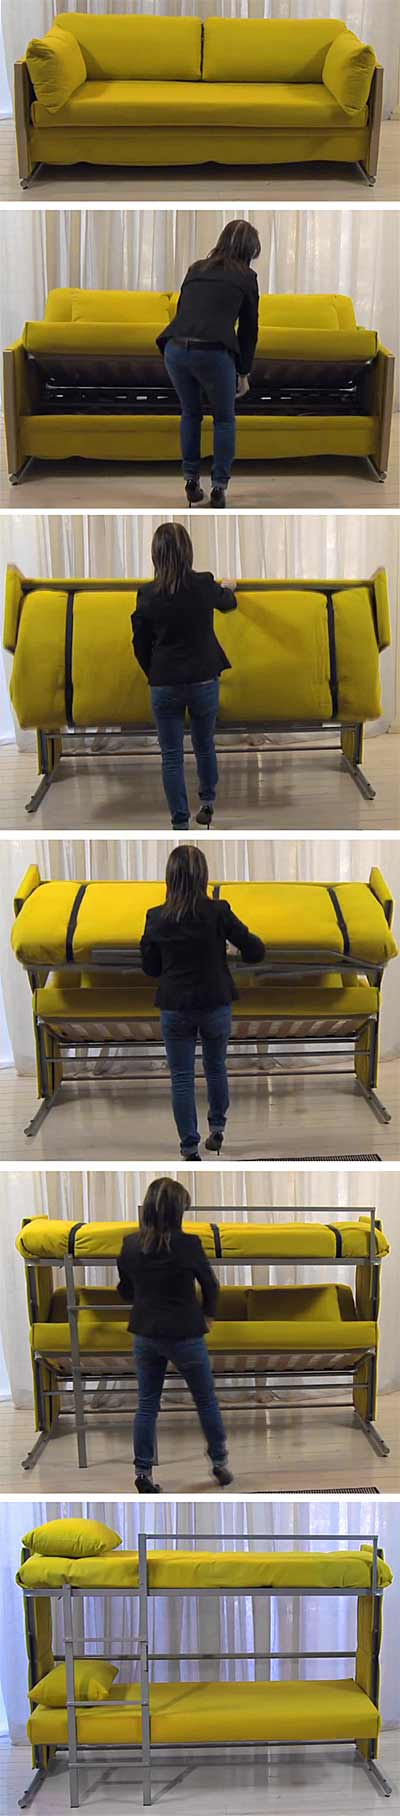 Amazing Bunk Bed Couch Folding Sofa Turns Into Bunk Bed In Seconds Uwap Interior Chair Design Uwaporg